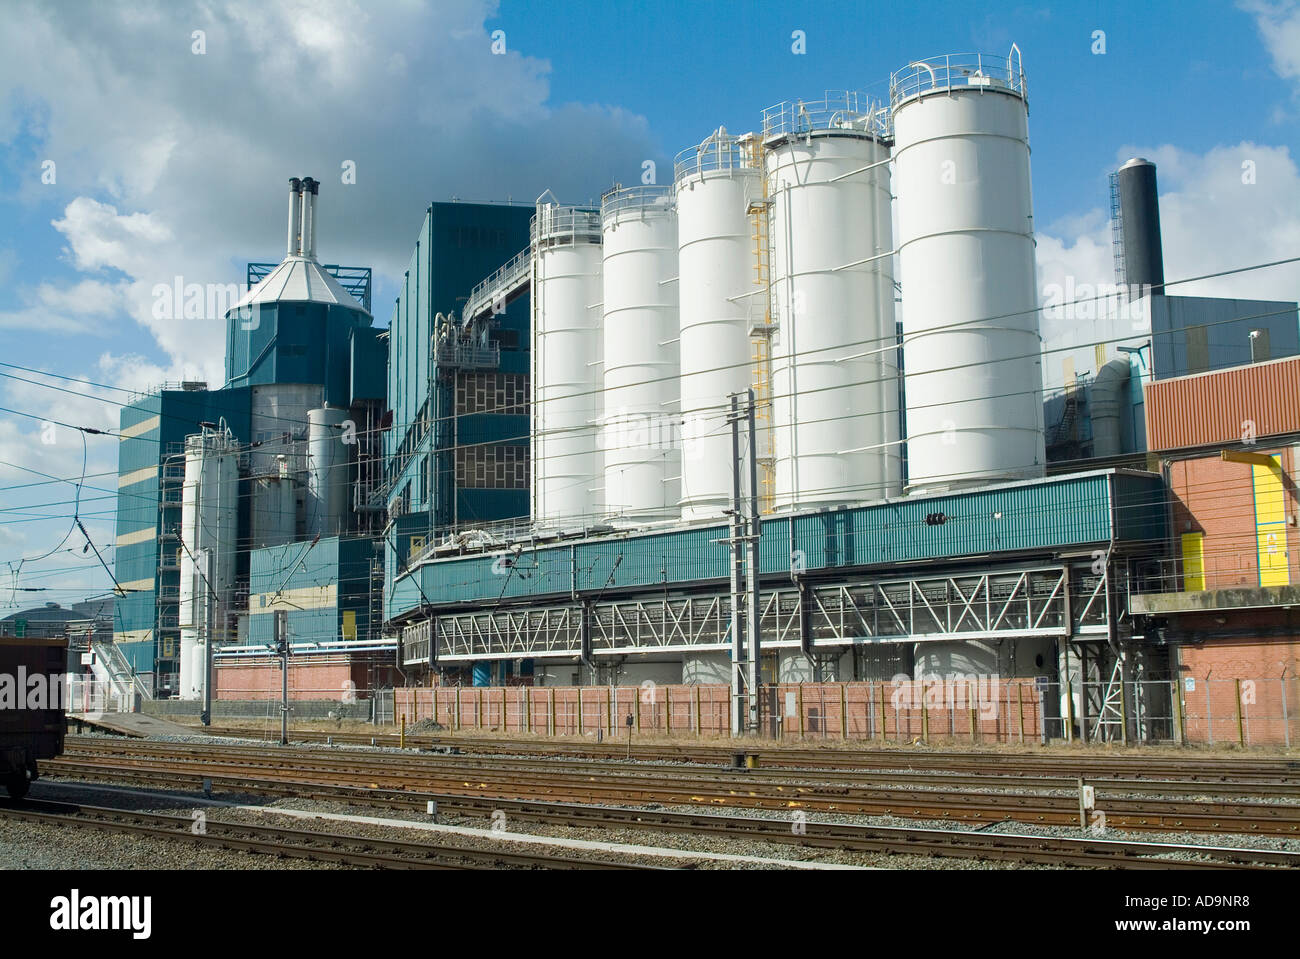 Chemical works in the town of Warrington - Stock Image